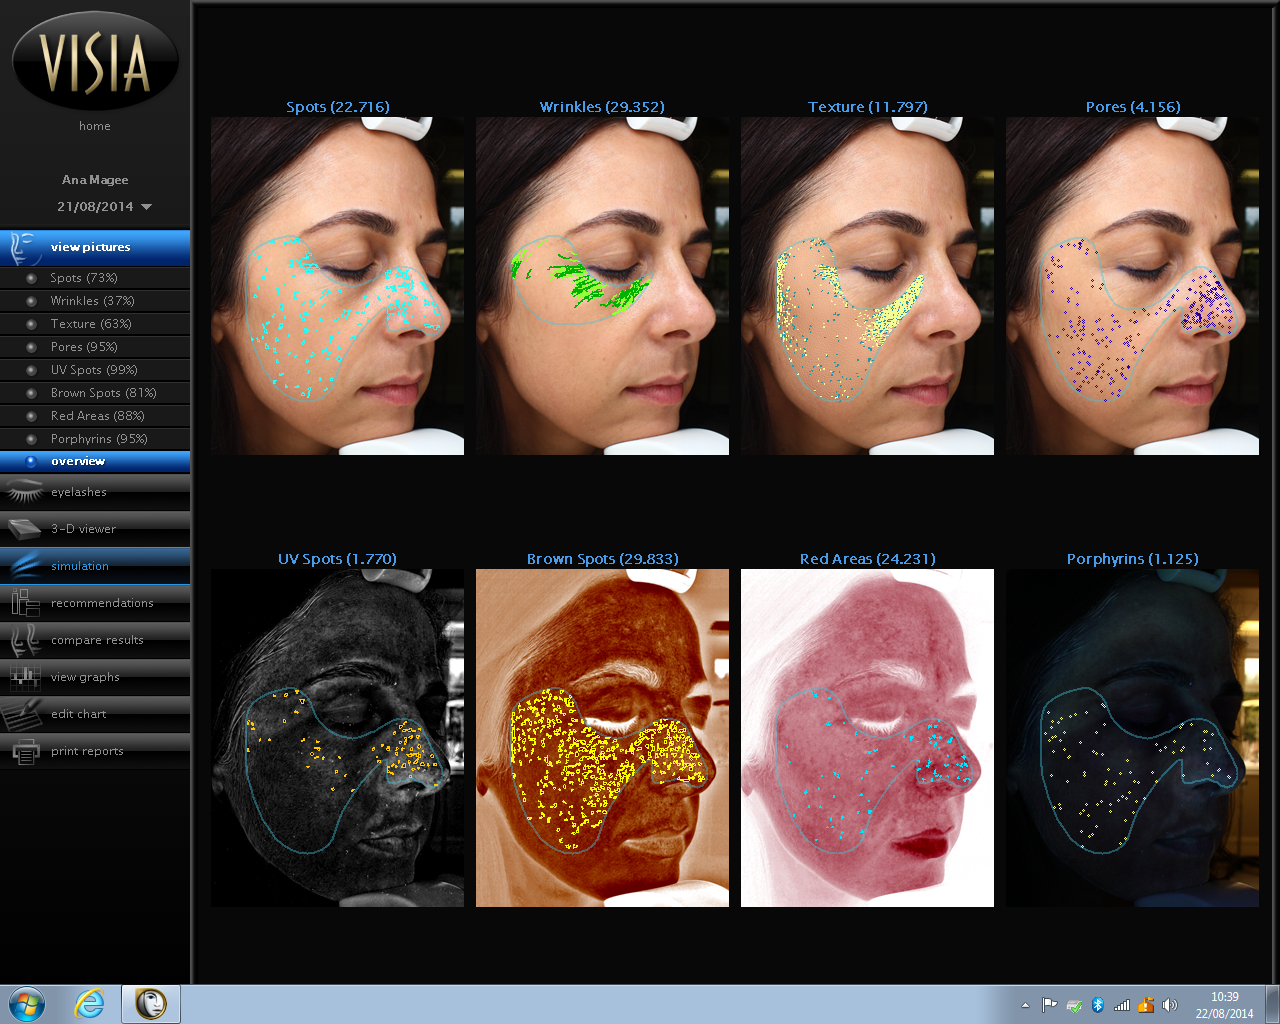 Anna Magee's Visia skin analysis scored all the ways in which her skin is ageing.